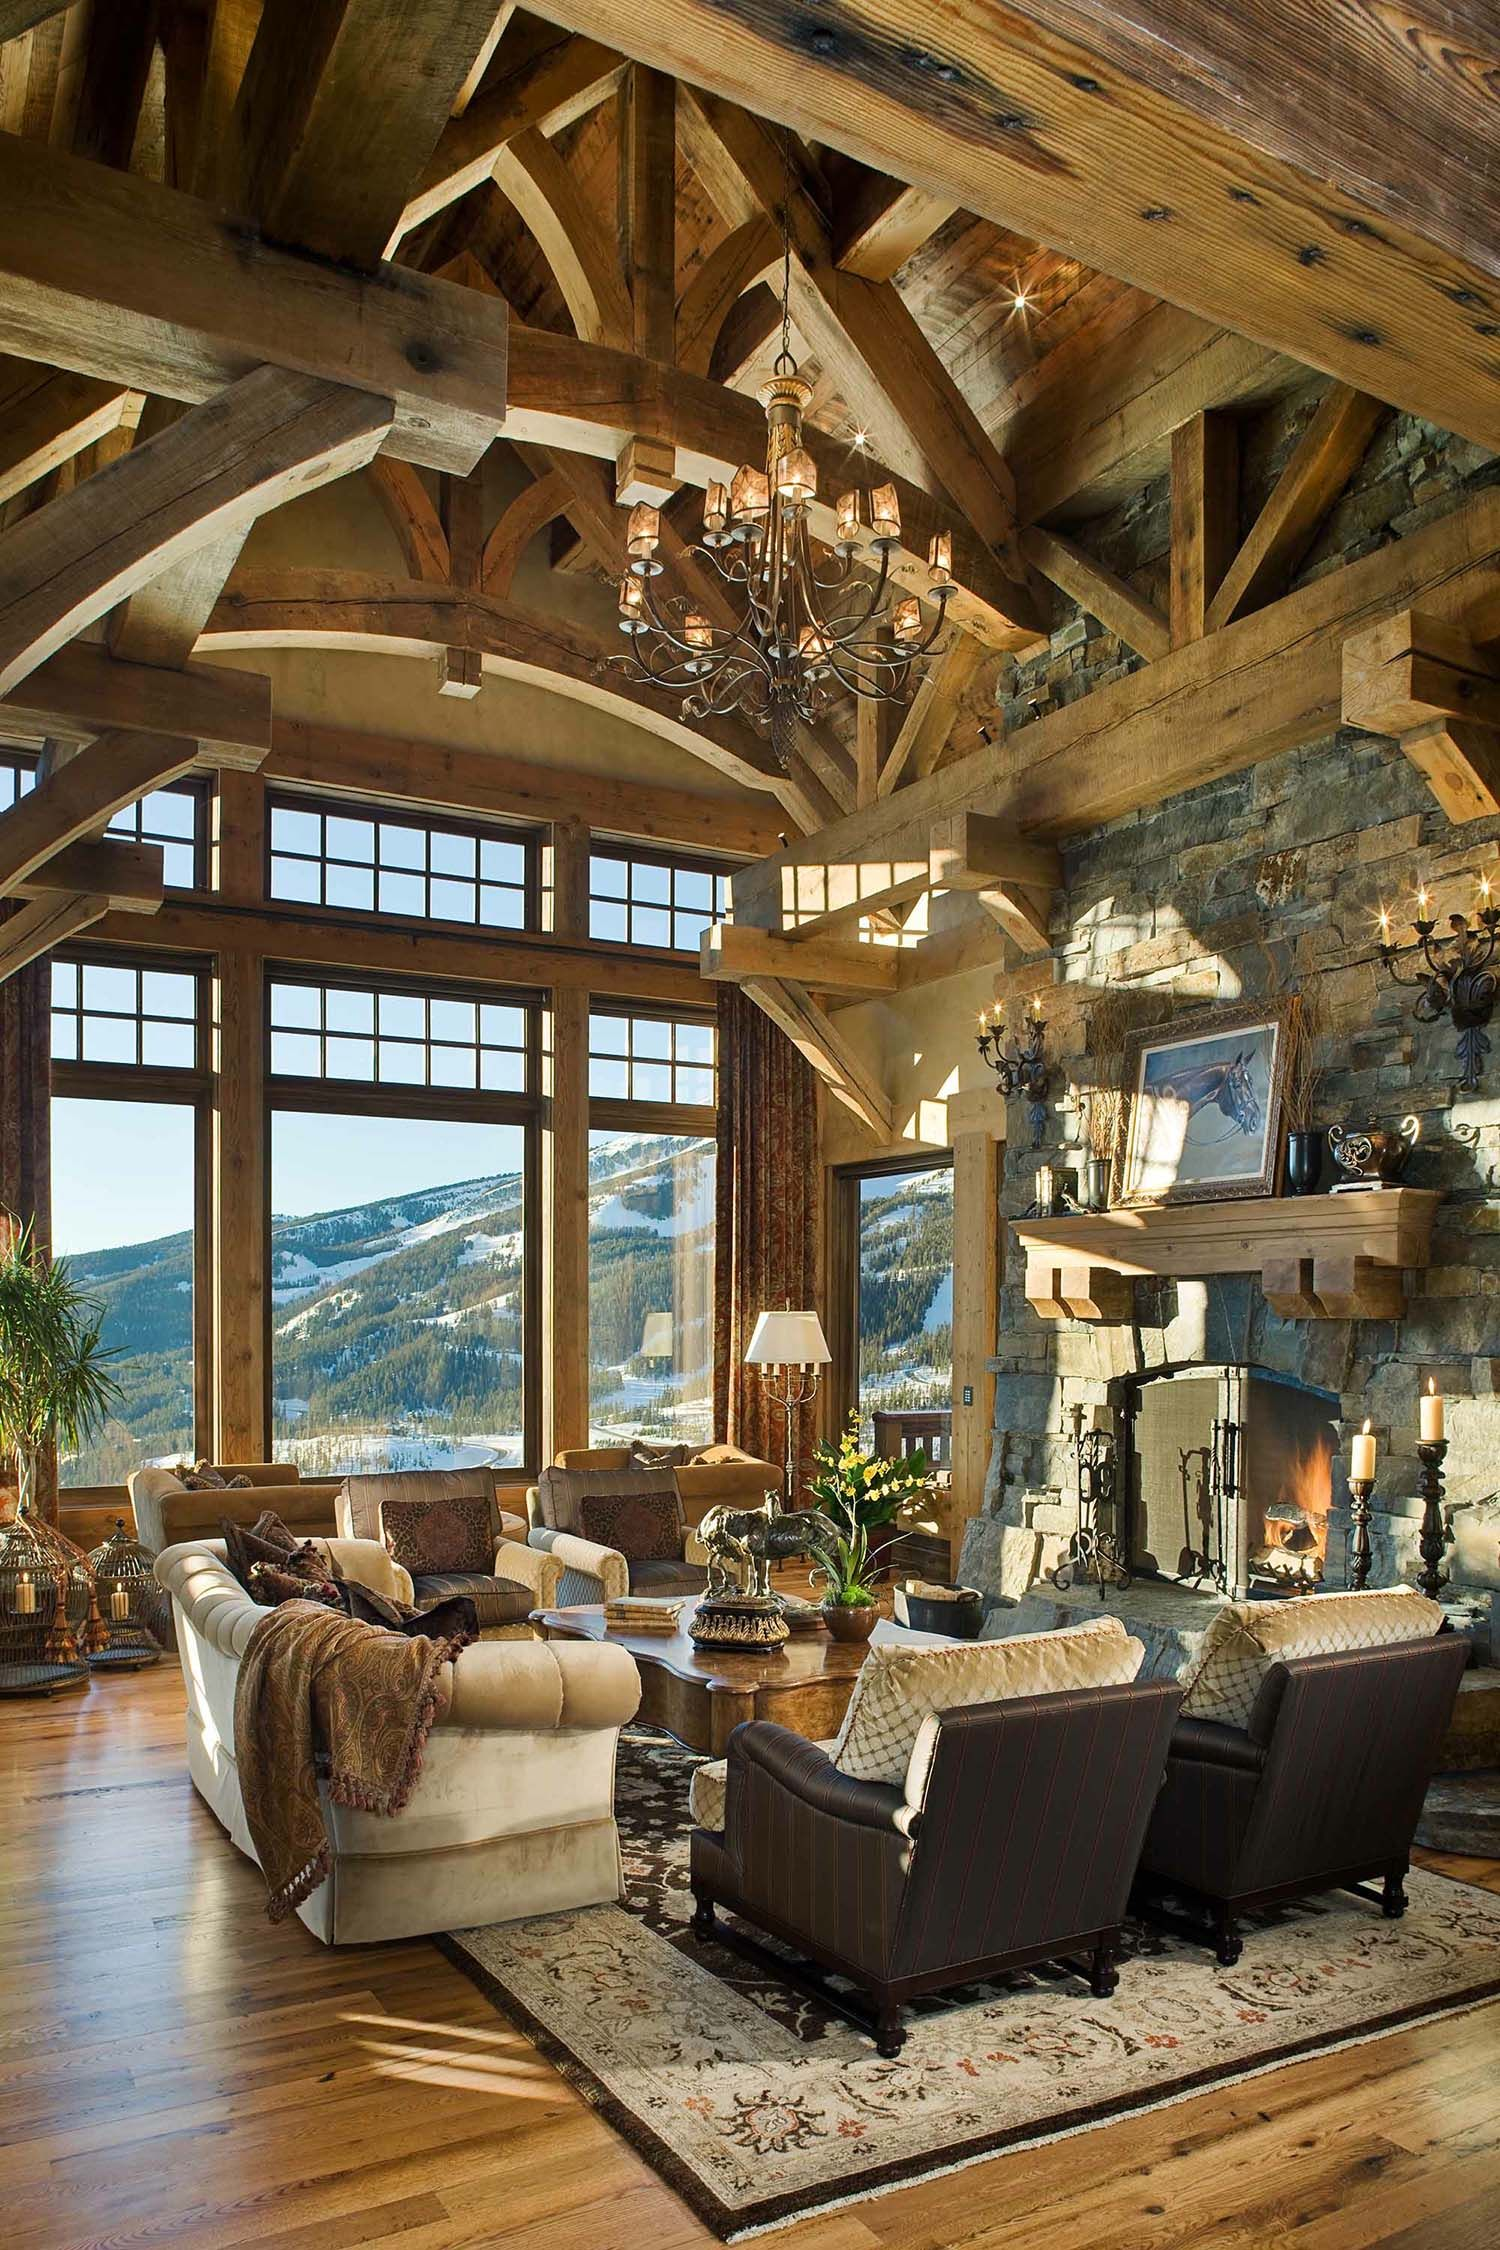 Photo of Handcrafted timber frame home with astonishing Rocky Mountain views